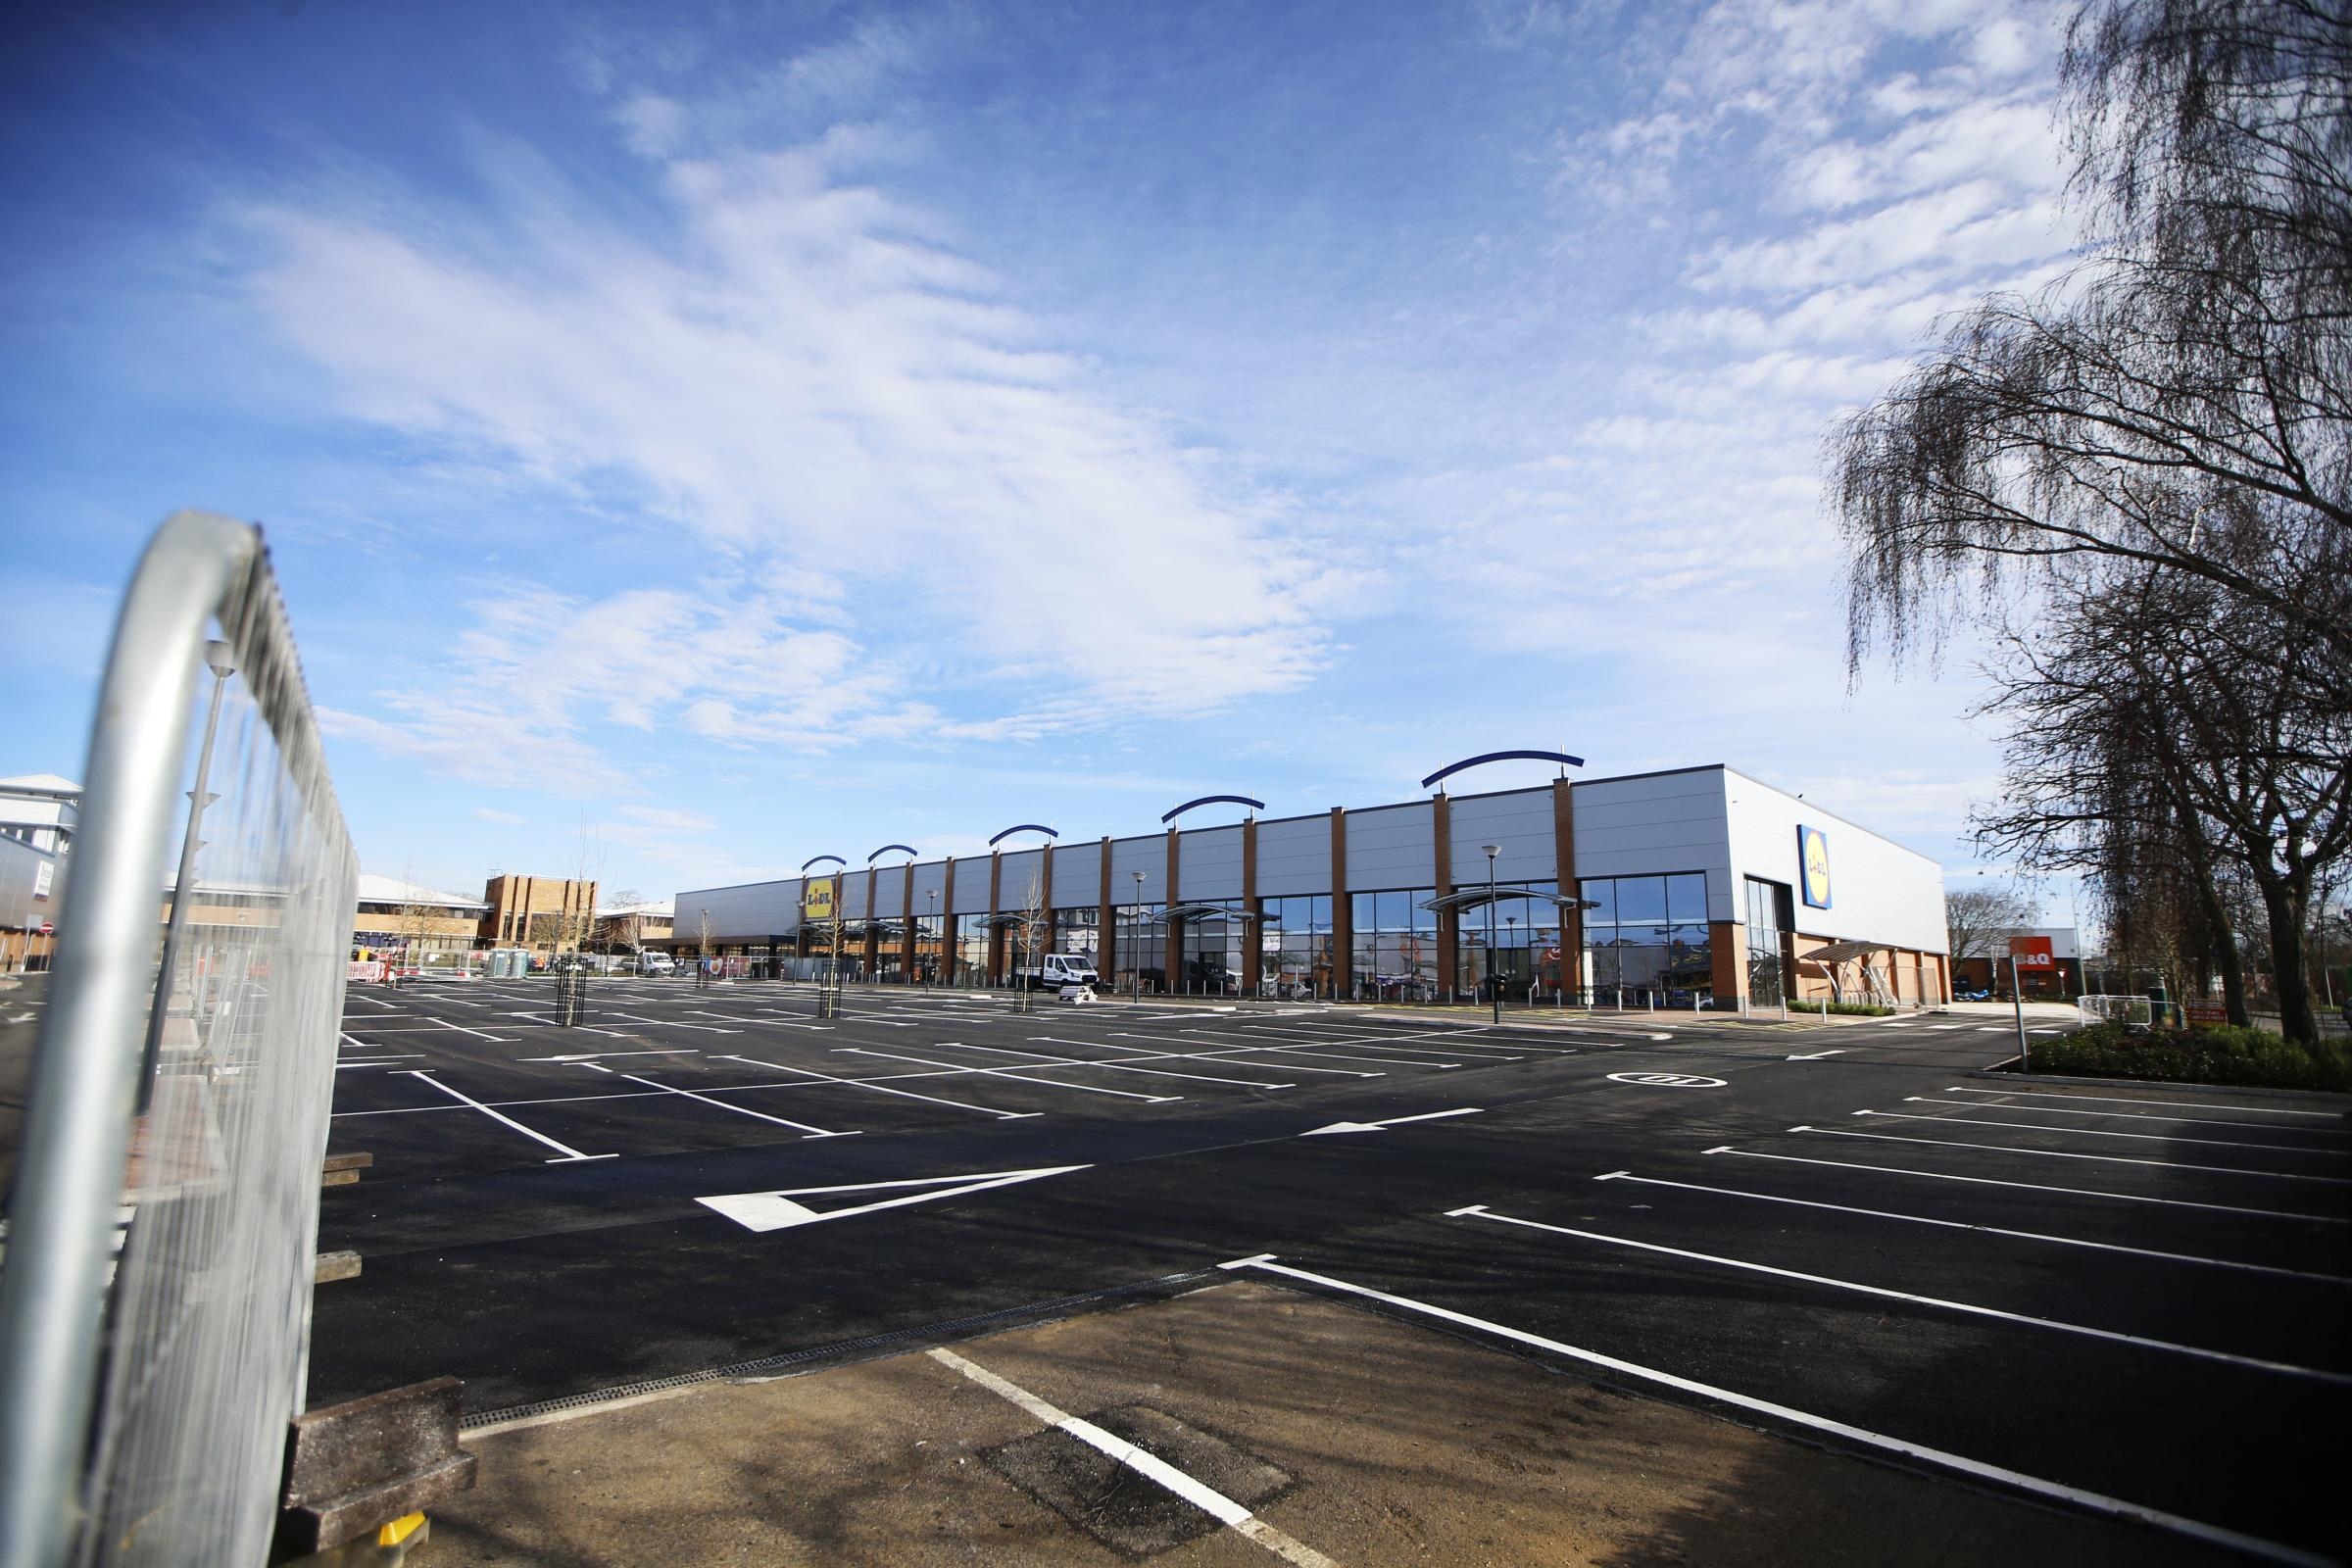 New units at the Fairacres Retail Park in Abingdon are nearing completion. 23/02/2021 Picture by Ed Nix